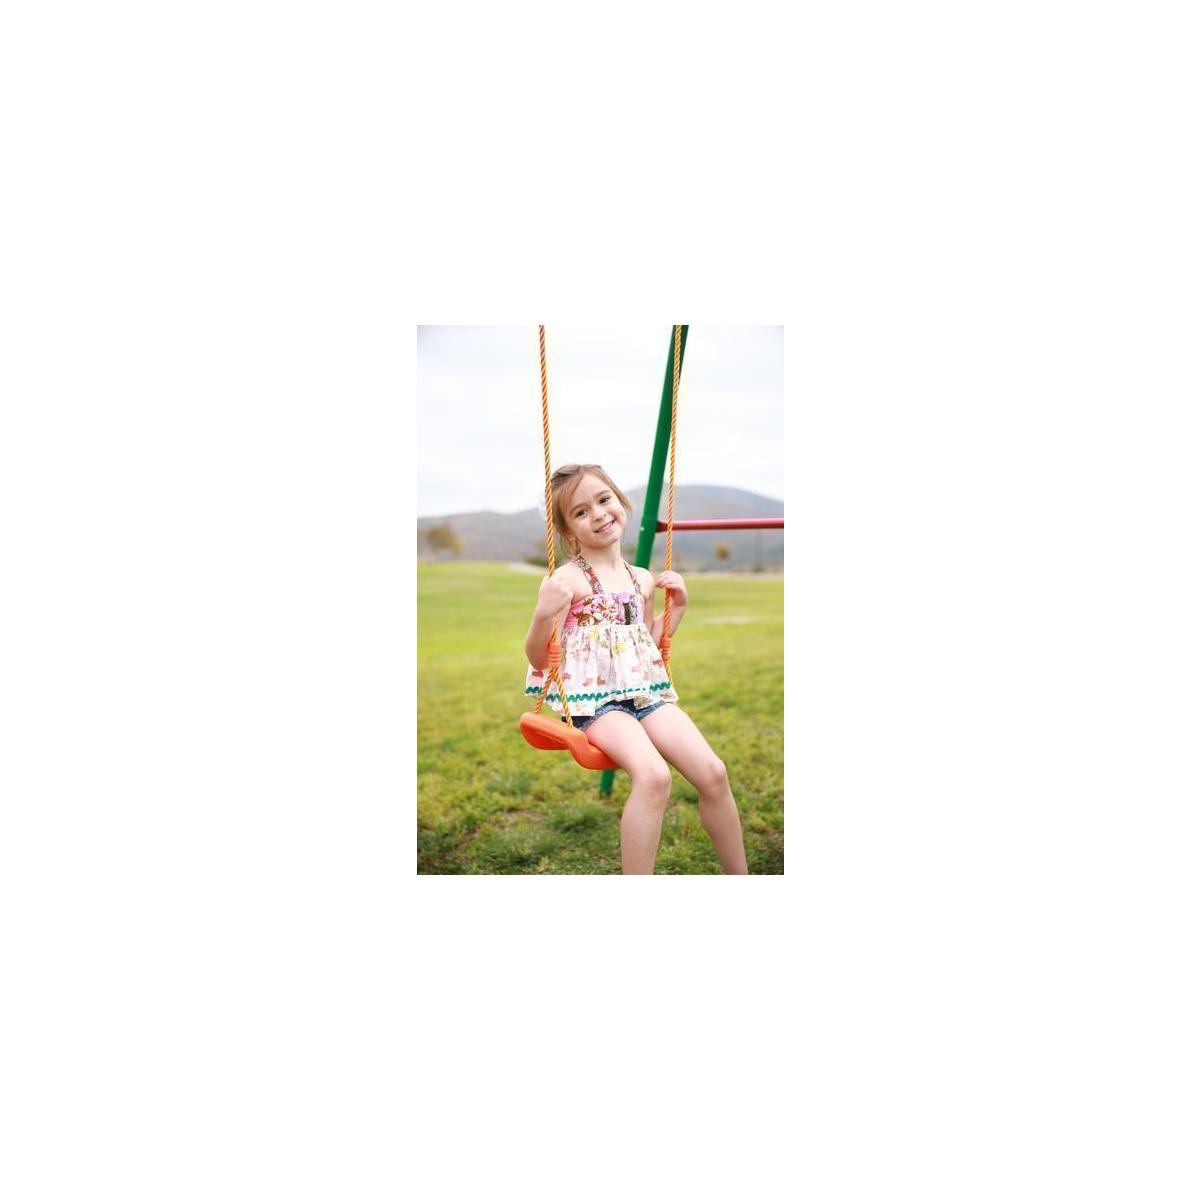 60% Off Kid Christmas Gift - Indoor/Outdoor Swing Fun: Kids Outside Swings For Swingset - You can take it inside your home during winter!